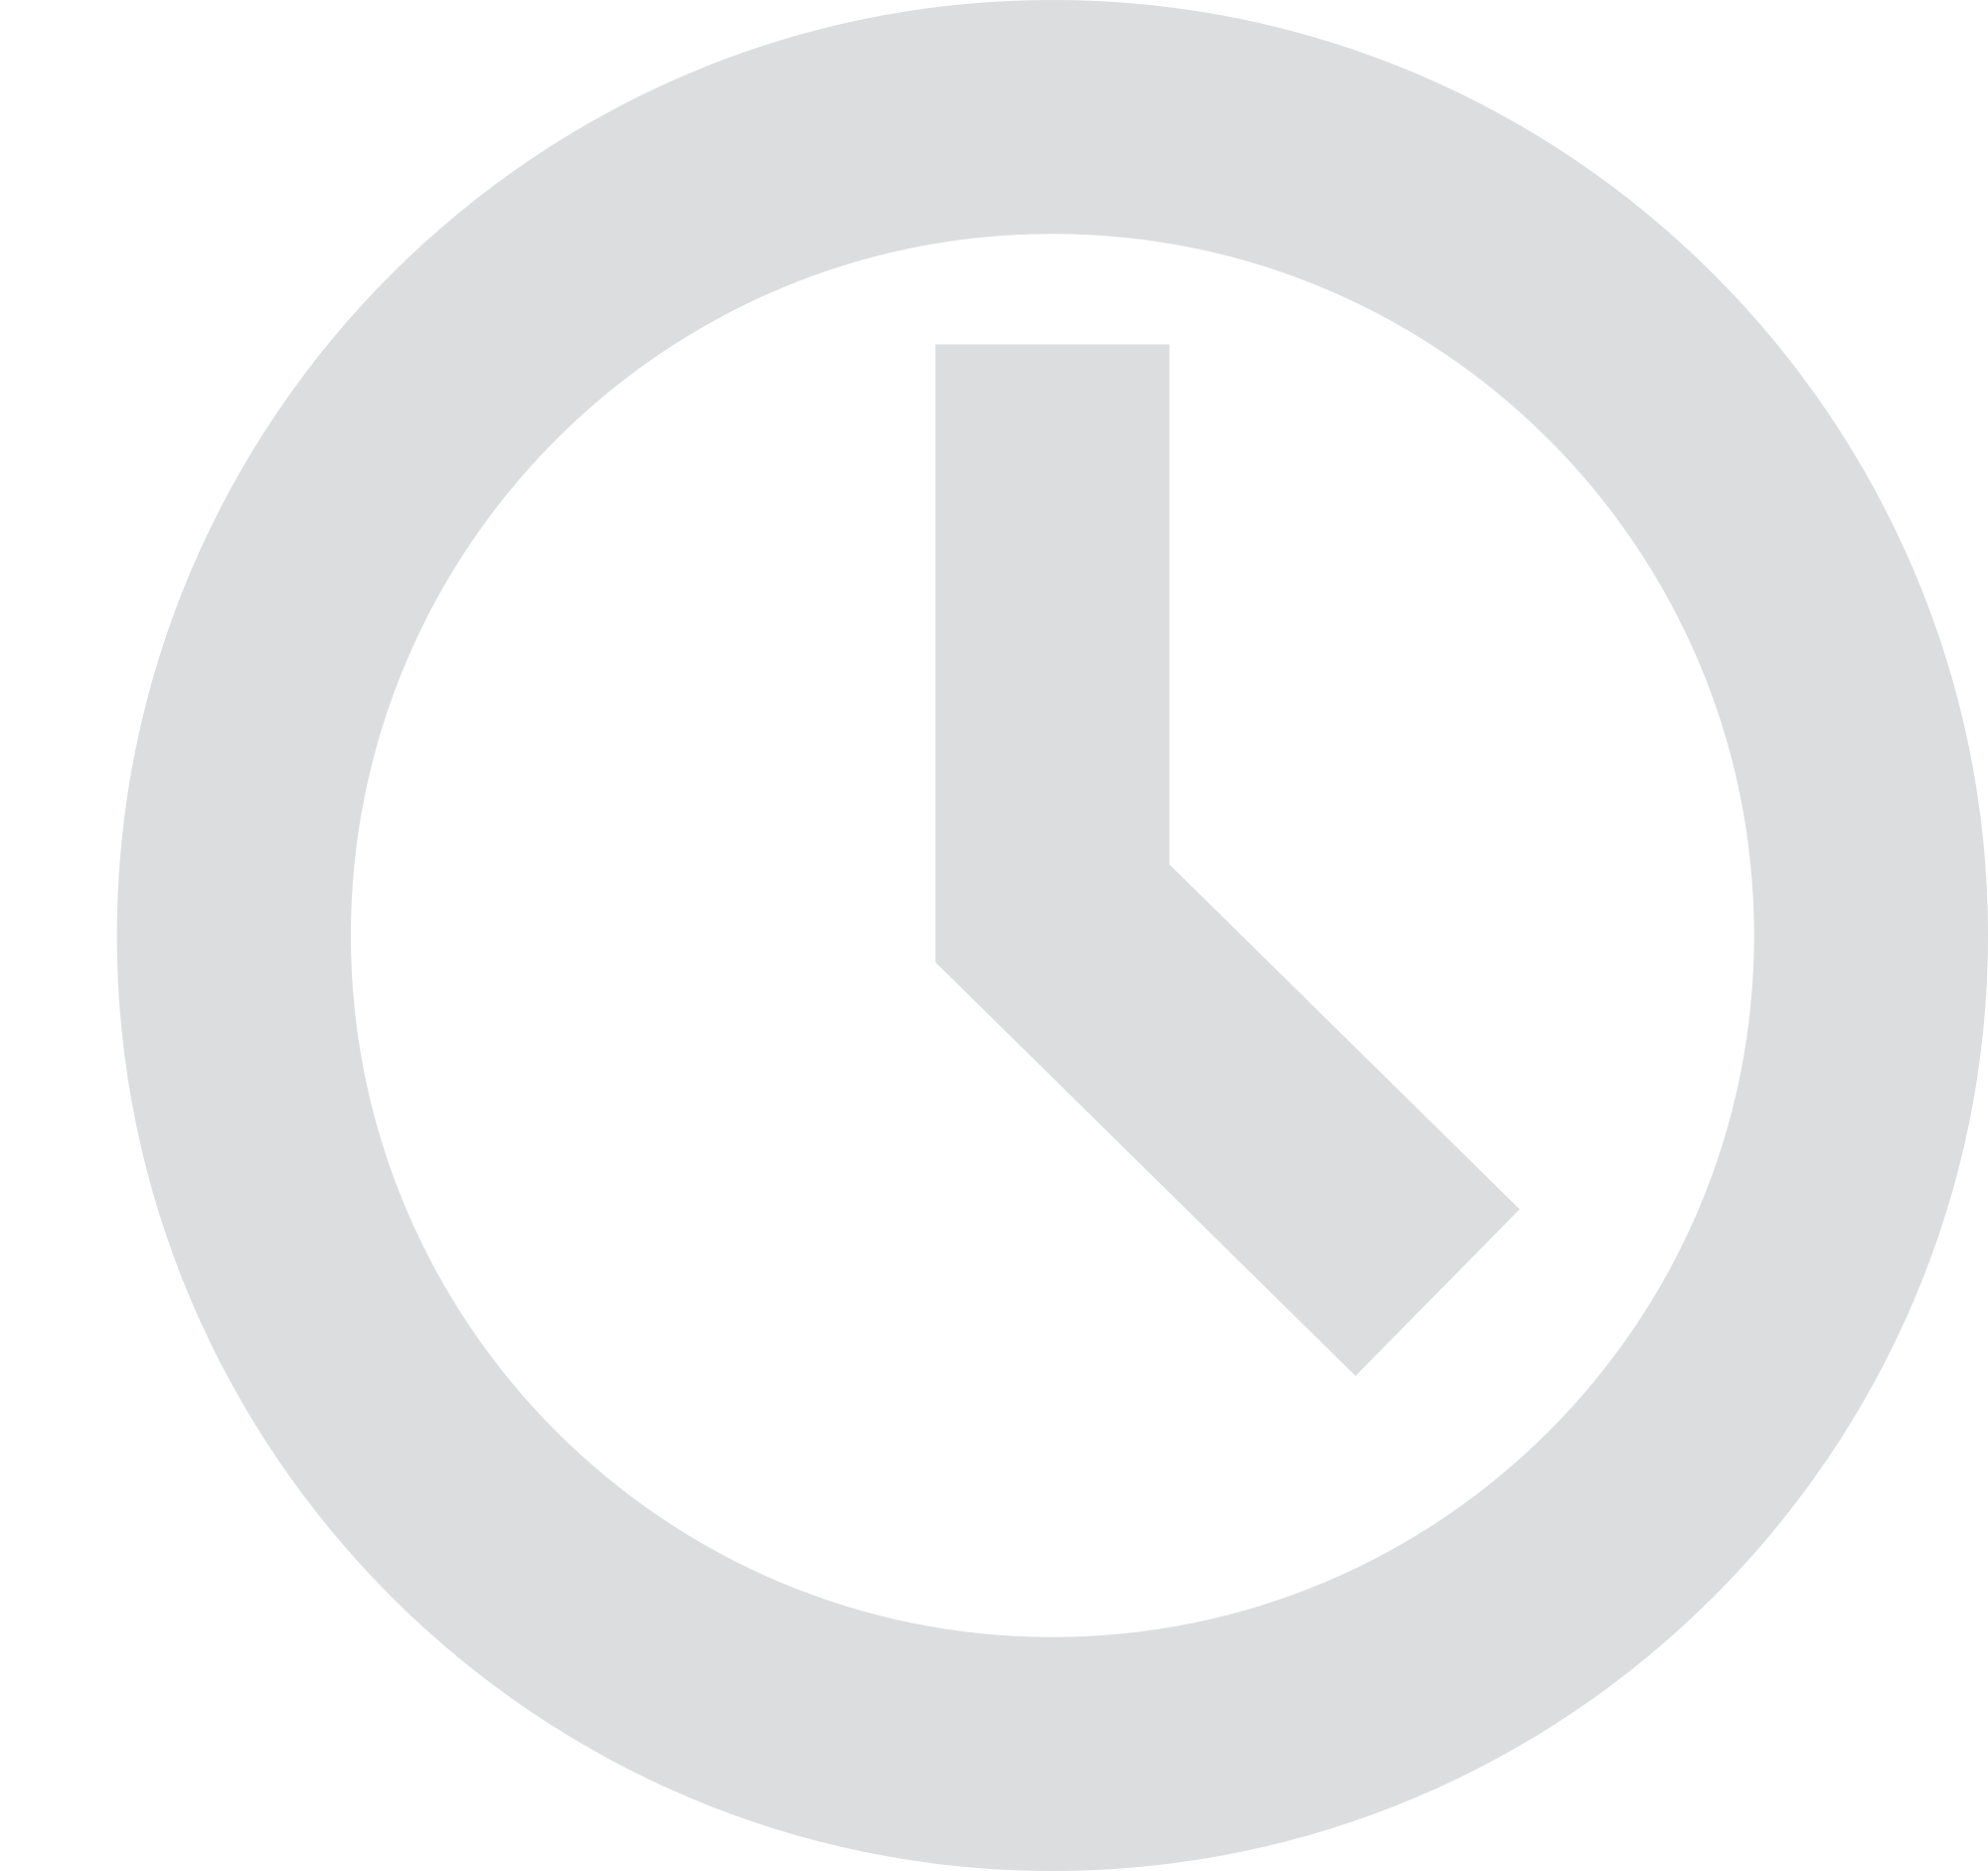 Clock svg #2, Download drawings